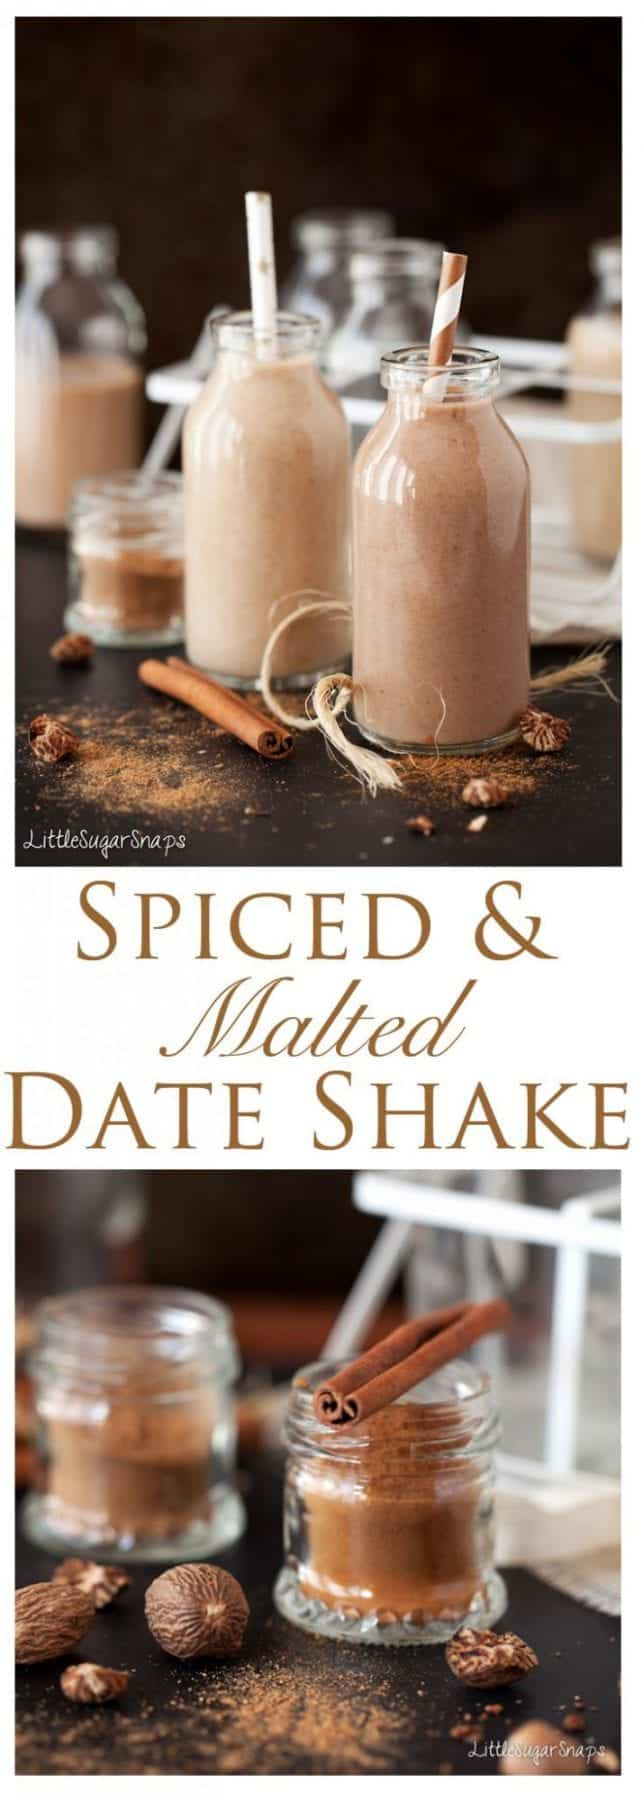 Spiced Malted Date Shake: This twist on the classic brings in flavors of cinnamon, nutmeg & malt. This spiced malted date shake is thick & creamy yet healthy too. Also comes in a chocolate variety!